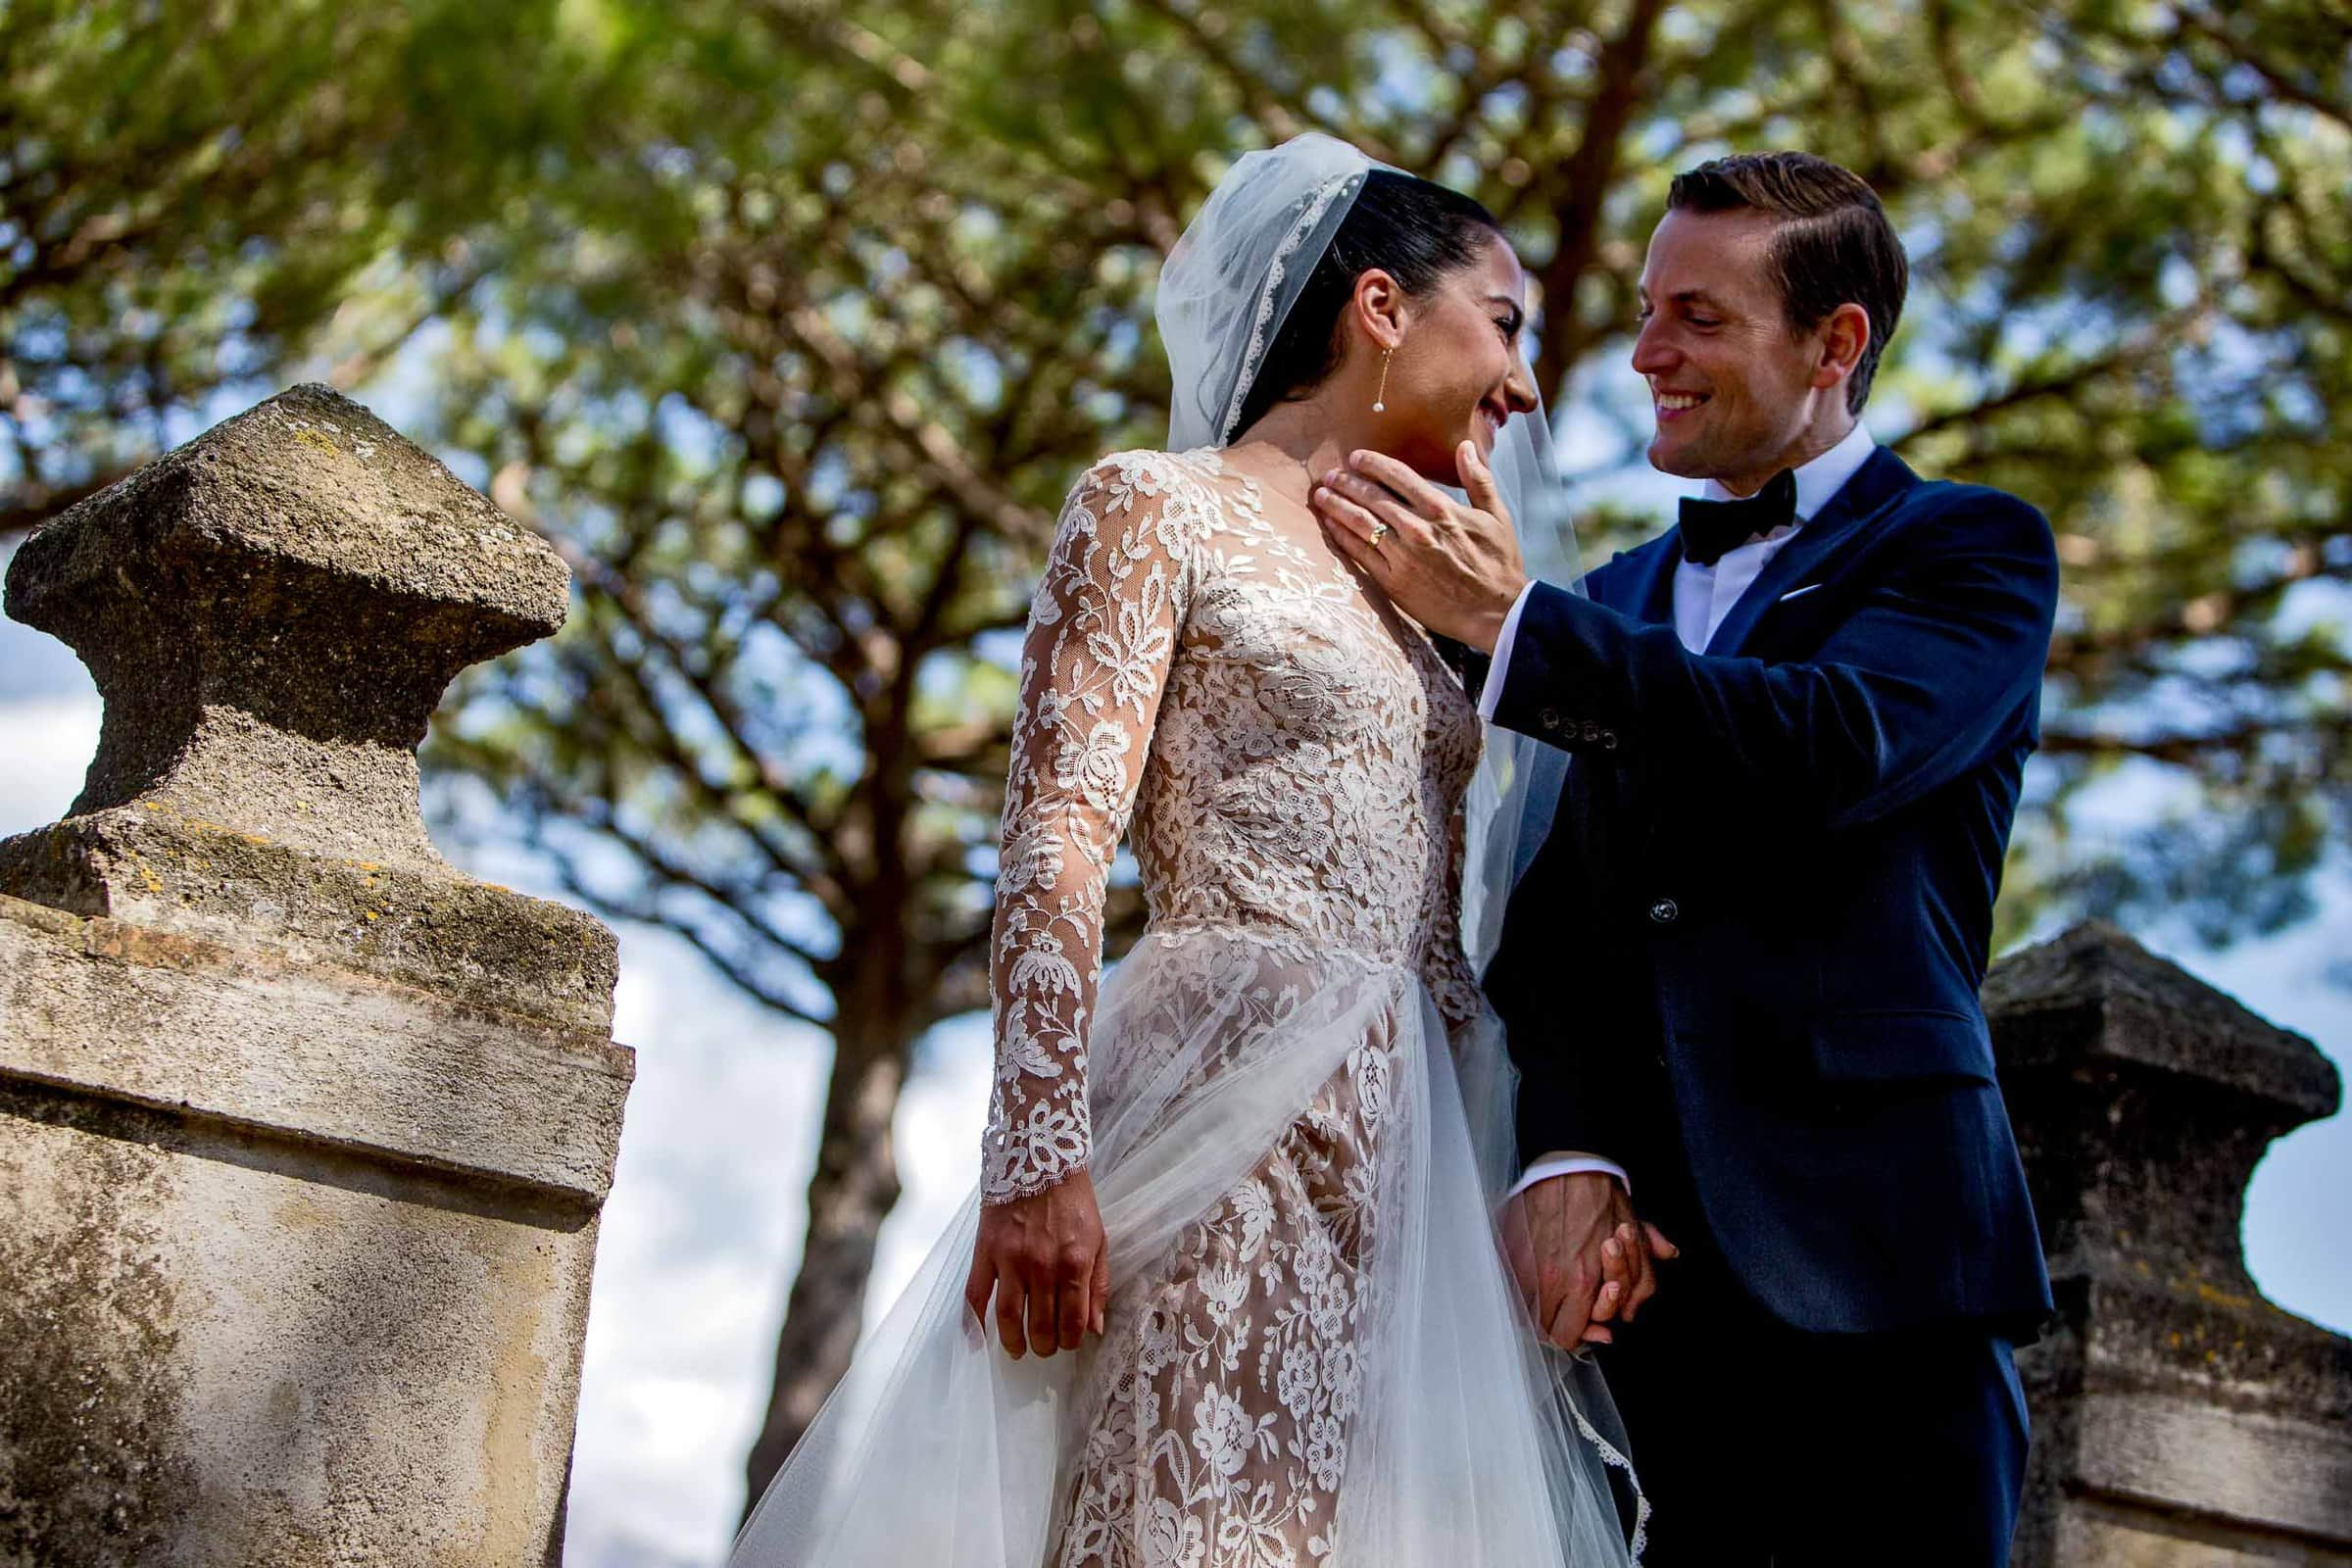 Gorgeous bride and groom portrait at Villa Cimbrone garden just after their ceremony for their Ravello elopement along the Amafi Coast in Italy